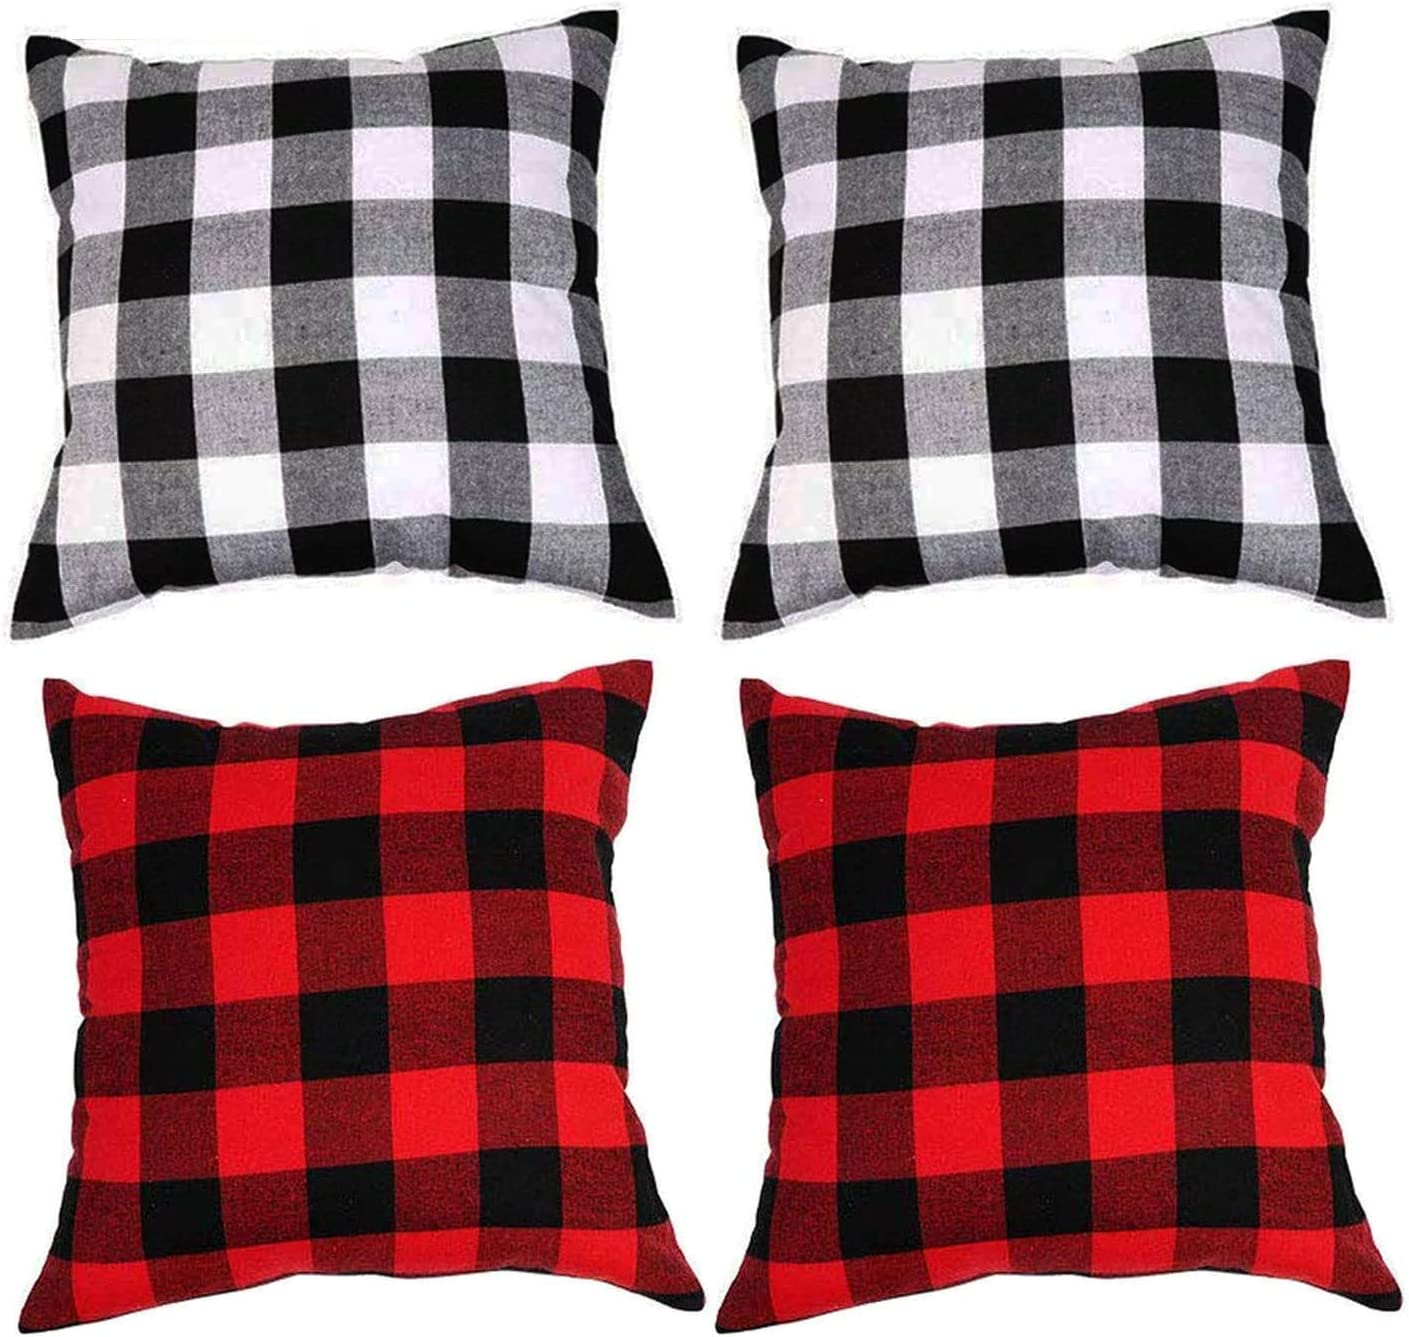 Deloky 4 Packs of Buffalo Check Plaid Pillow Covers -18 x 18 Inch Black & White and Red &Black Plaid Tartan Linen Throw Cushion Case for Sofa Bedroom and Car